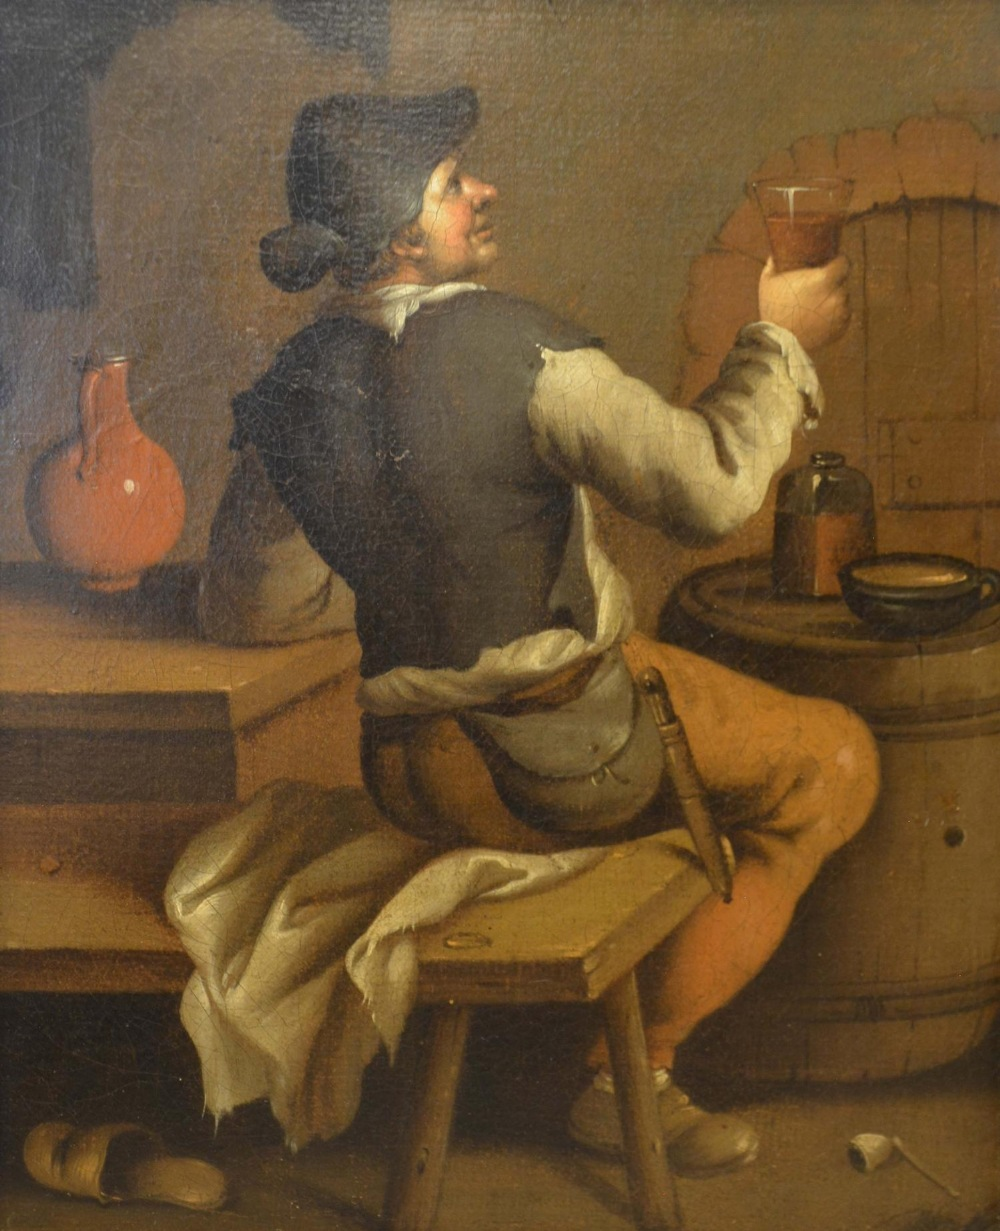 Lot 71 - Antoine Dury, 1819-1896, France, Figure in a Tavern Interior, oil on canvas, signed verso, 39 x 31cm